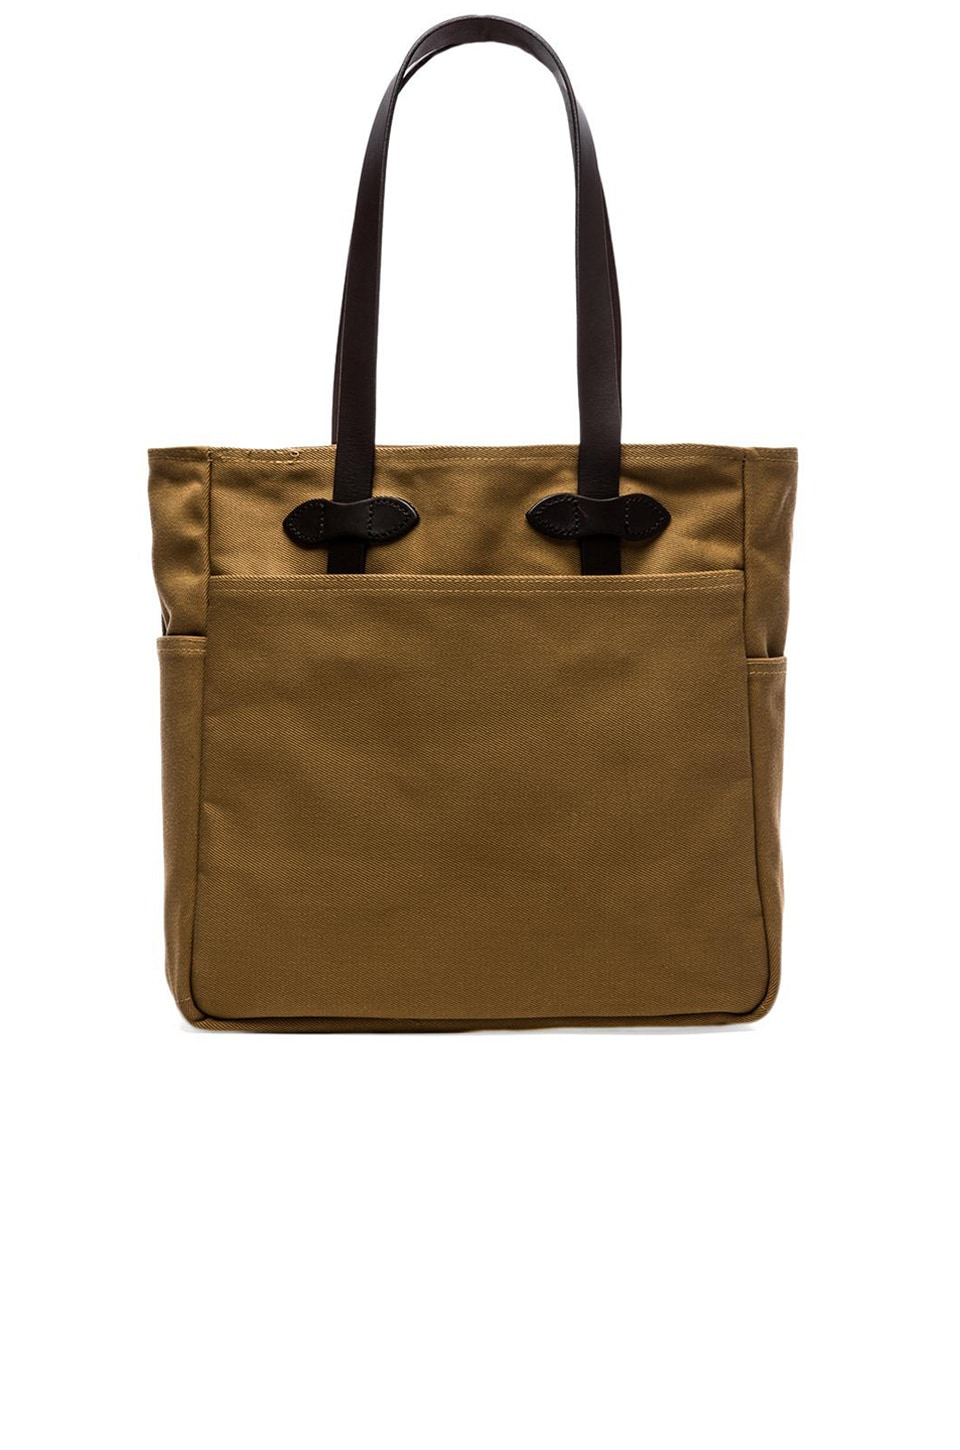 Open Tote Bag at REVOLVE